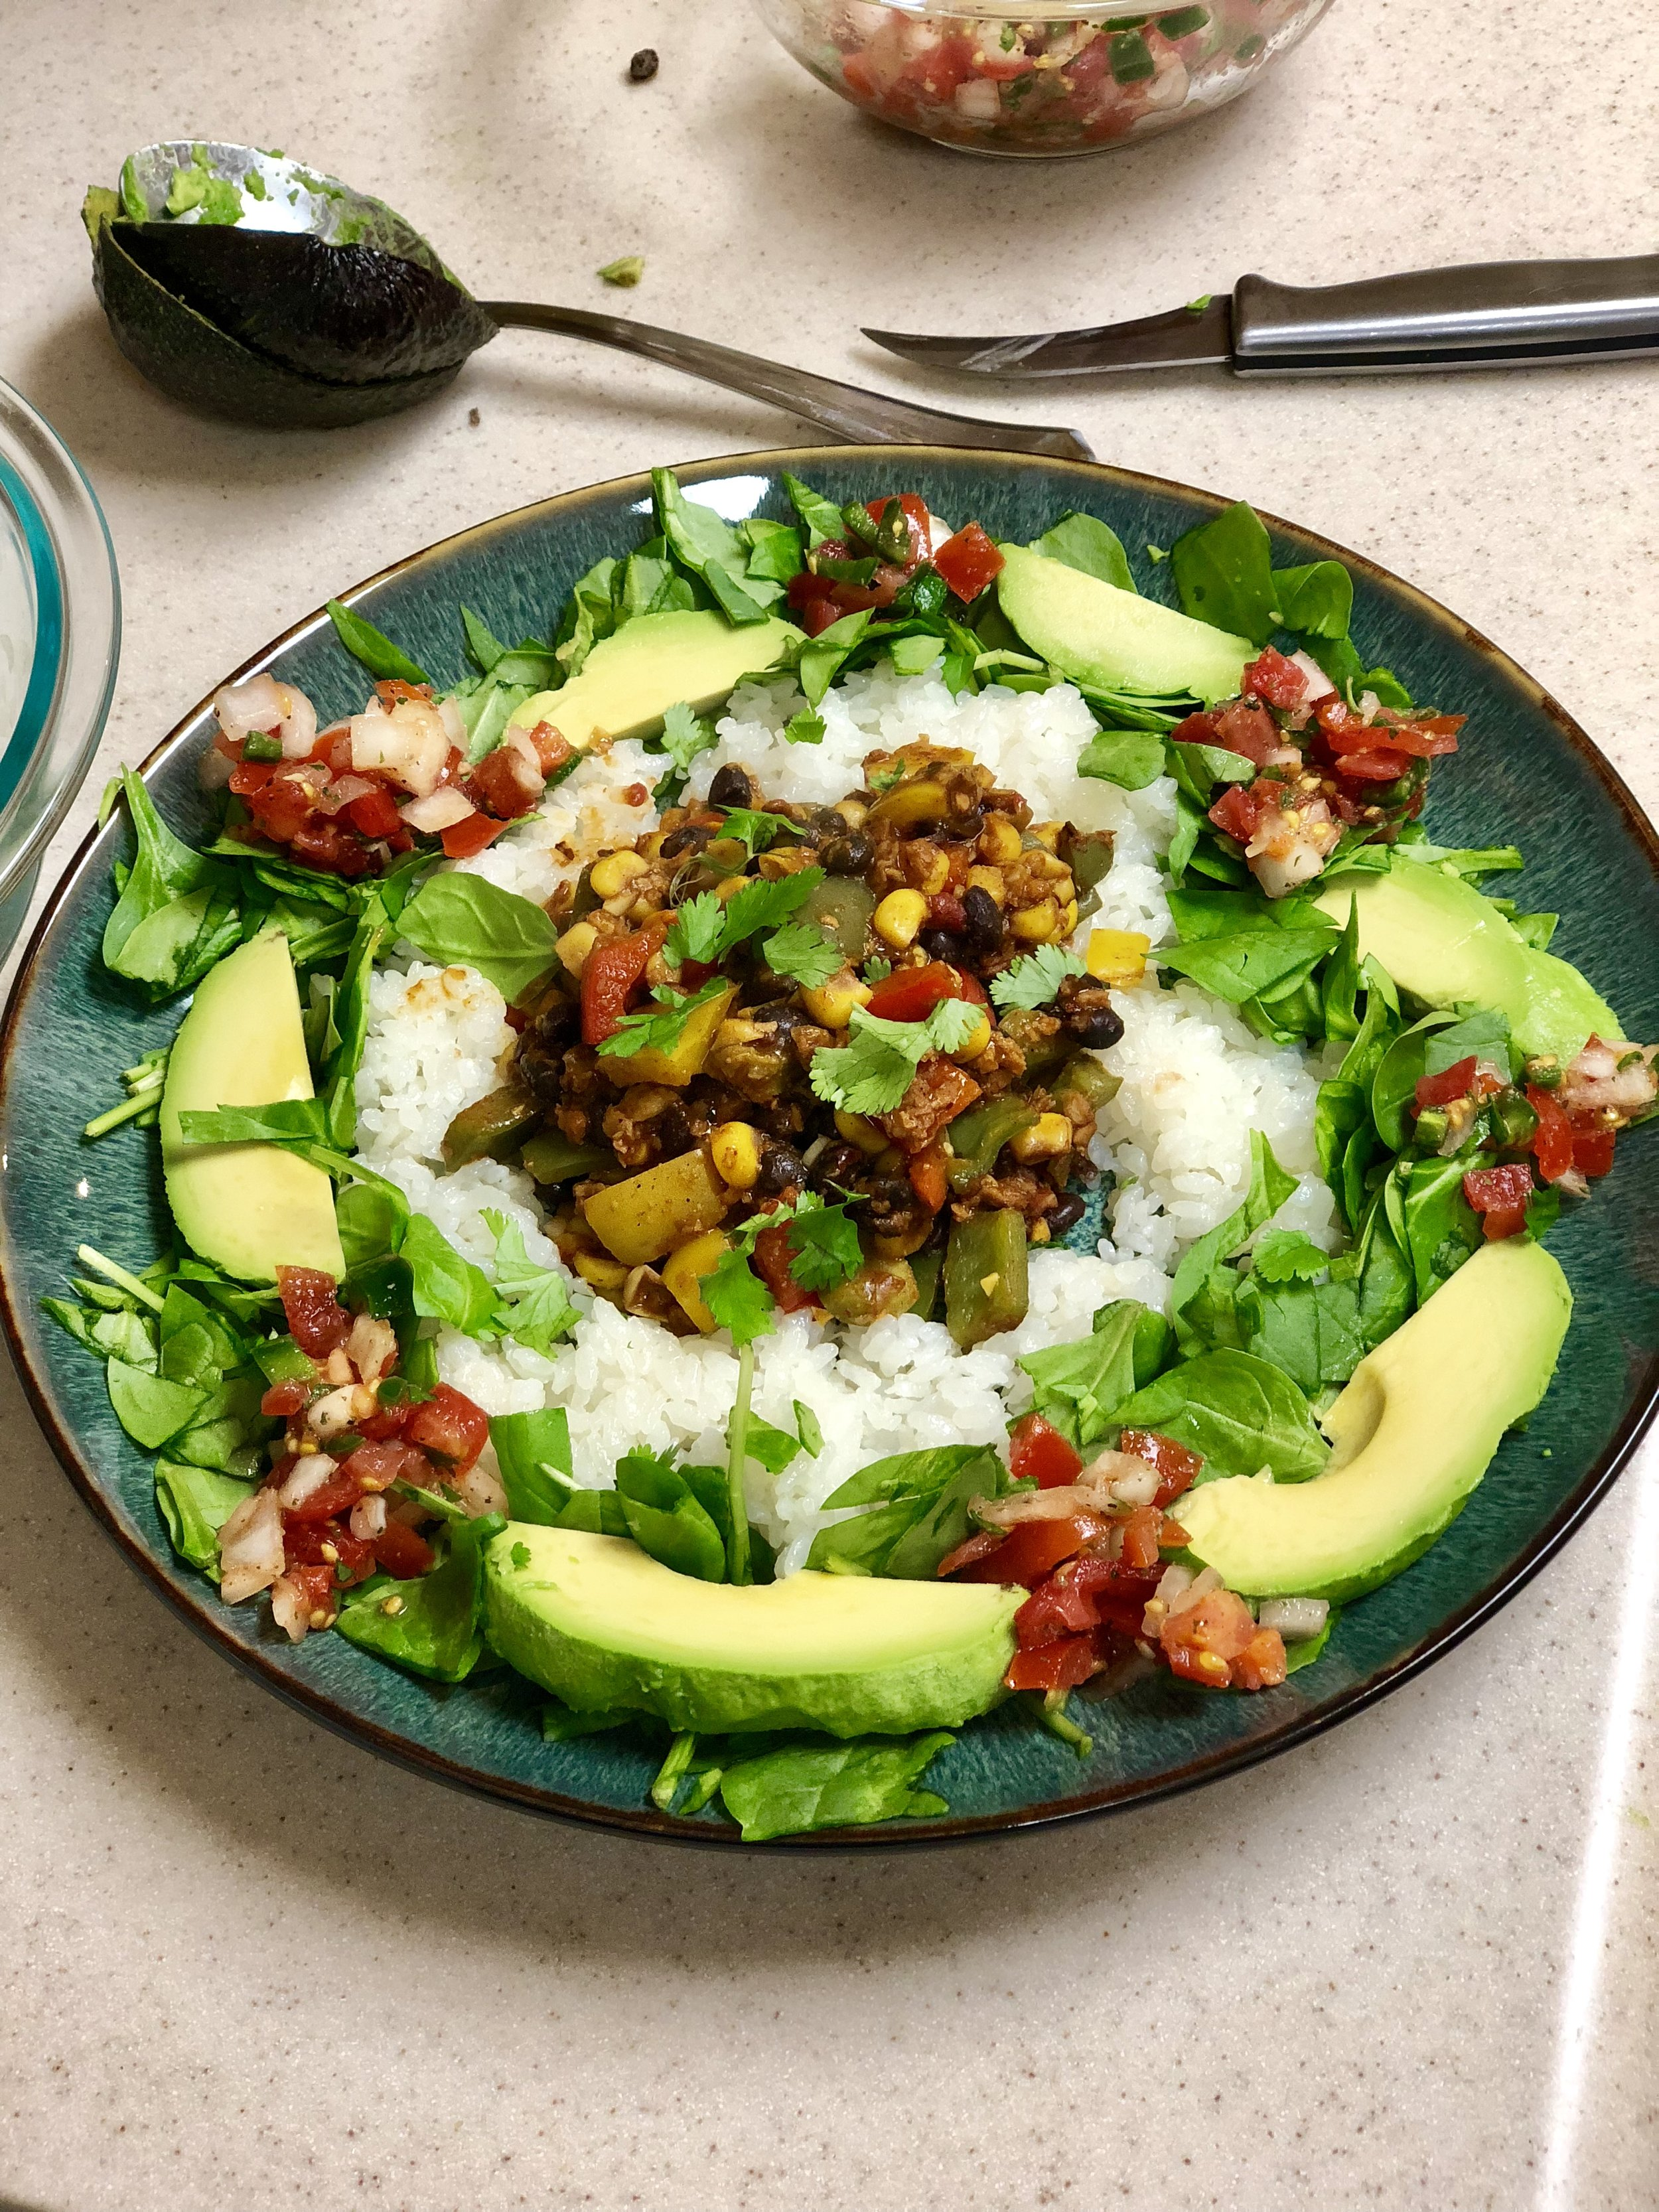 Naked Burritos   - (Makes 4 servings with leftovers)Ingredients: Two cups of walnuts chopped up smallRice  Avocados A bag go your favorite lettuce mine is spinach,  arugula, or kaleI package of Soyrizo 3 bell peppers of various colors1/2 chopped of an onion16oz (1 can ) of red beans 16oz (1 can )of black beans 11oz (1can) of Mexicorn Tablespoon of oil in the panTablespoon of lemon juice in the panTablespoon of Siracha  in the pan1/2 tablespoon of dried cilantroHalf a teaspoon of paprika 1 Tablespoon of minced garlic1/2 of a red onion chopped1 teaspoon of chili powder1 teaspoon of oregano1 teaspoon of cuminA dash of salt1/2 a teaspoon of pepper Directions:Place the oil, lemon, Sriracha, Cilantro, Paprika, Garlic, Chili Pepper, Cumin, Oregano  Salt, and Pepper in the pan on medium heat. Once those ingredients start sizzling add the onion, bell peppers, walnuts, beans, soyrizo, and corn. Cook the ingredients on low until the veggies are to your liking. While your veggies are cooking throw two cups of rice into the rice cooker. When everything is cooked, it is your turn to dress up your burrito any way you like and get creative. I add avocado, home made pico de Gallo, and fresh cilantro.